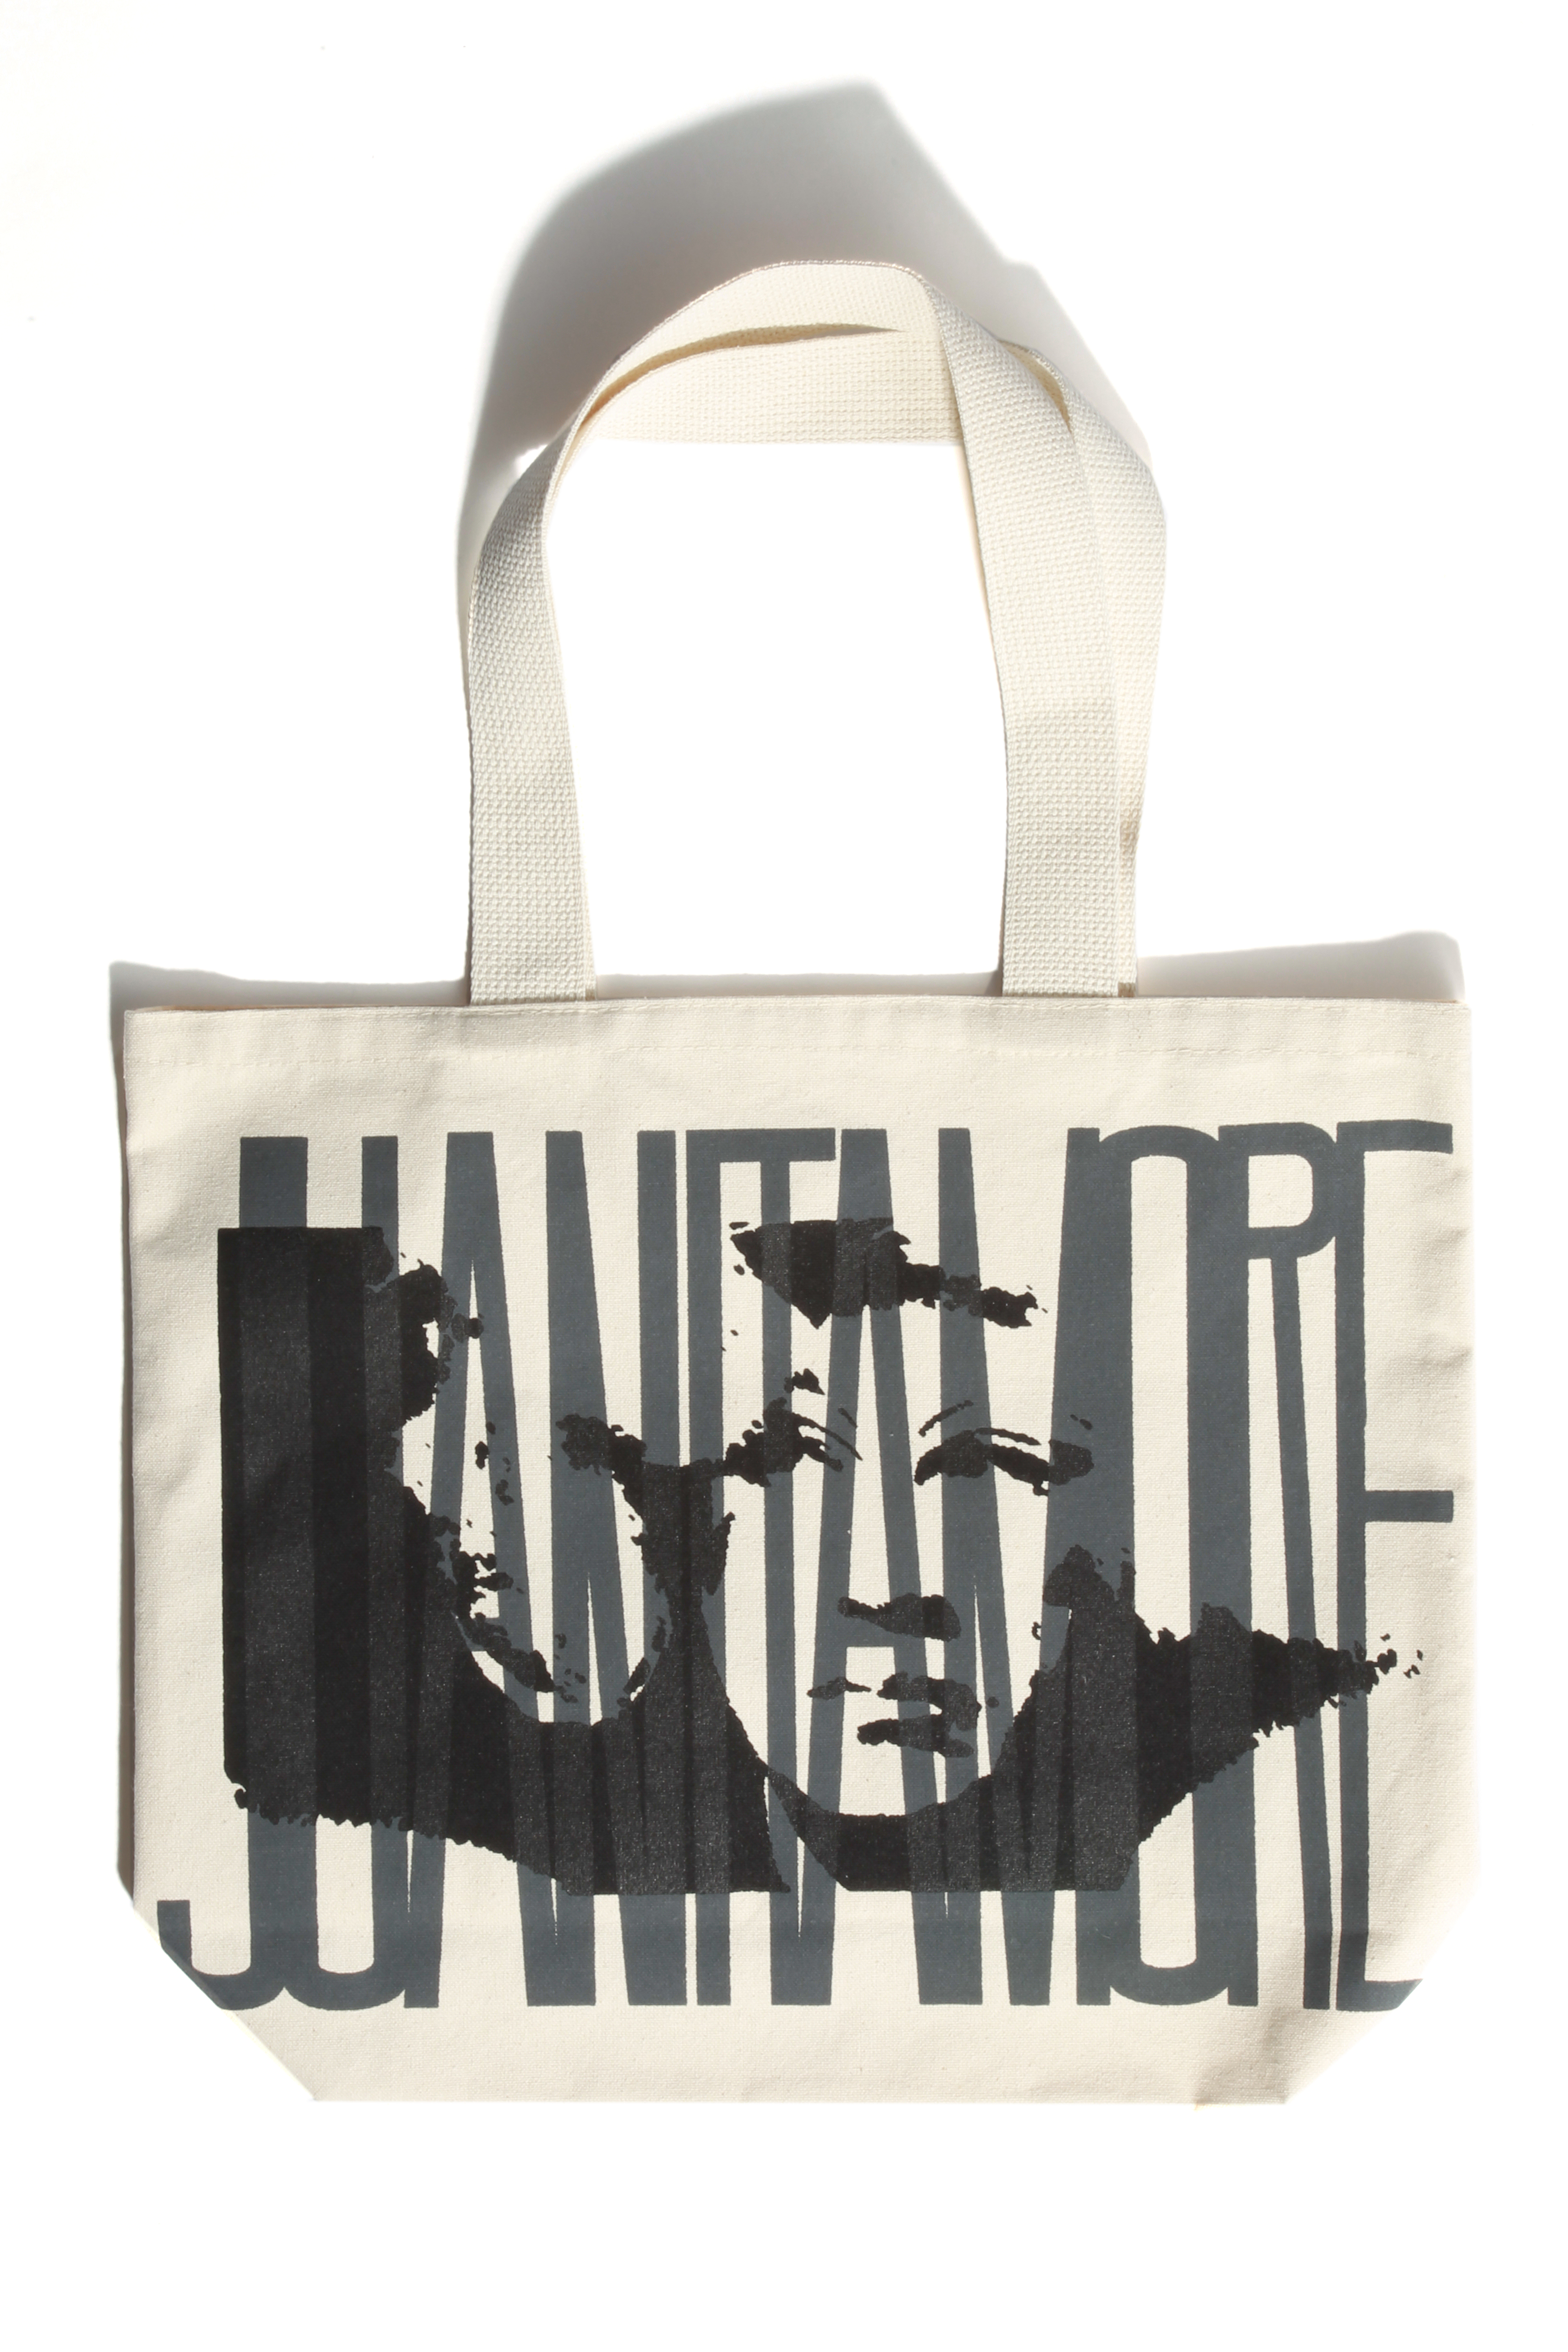 A tote designed by Jiawei Tang.